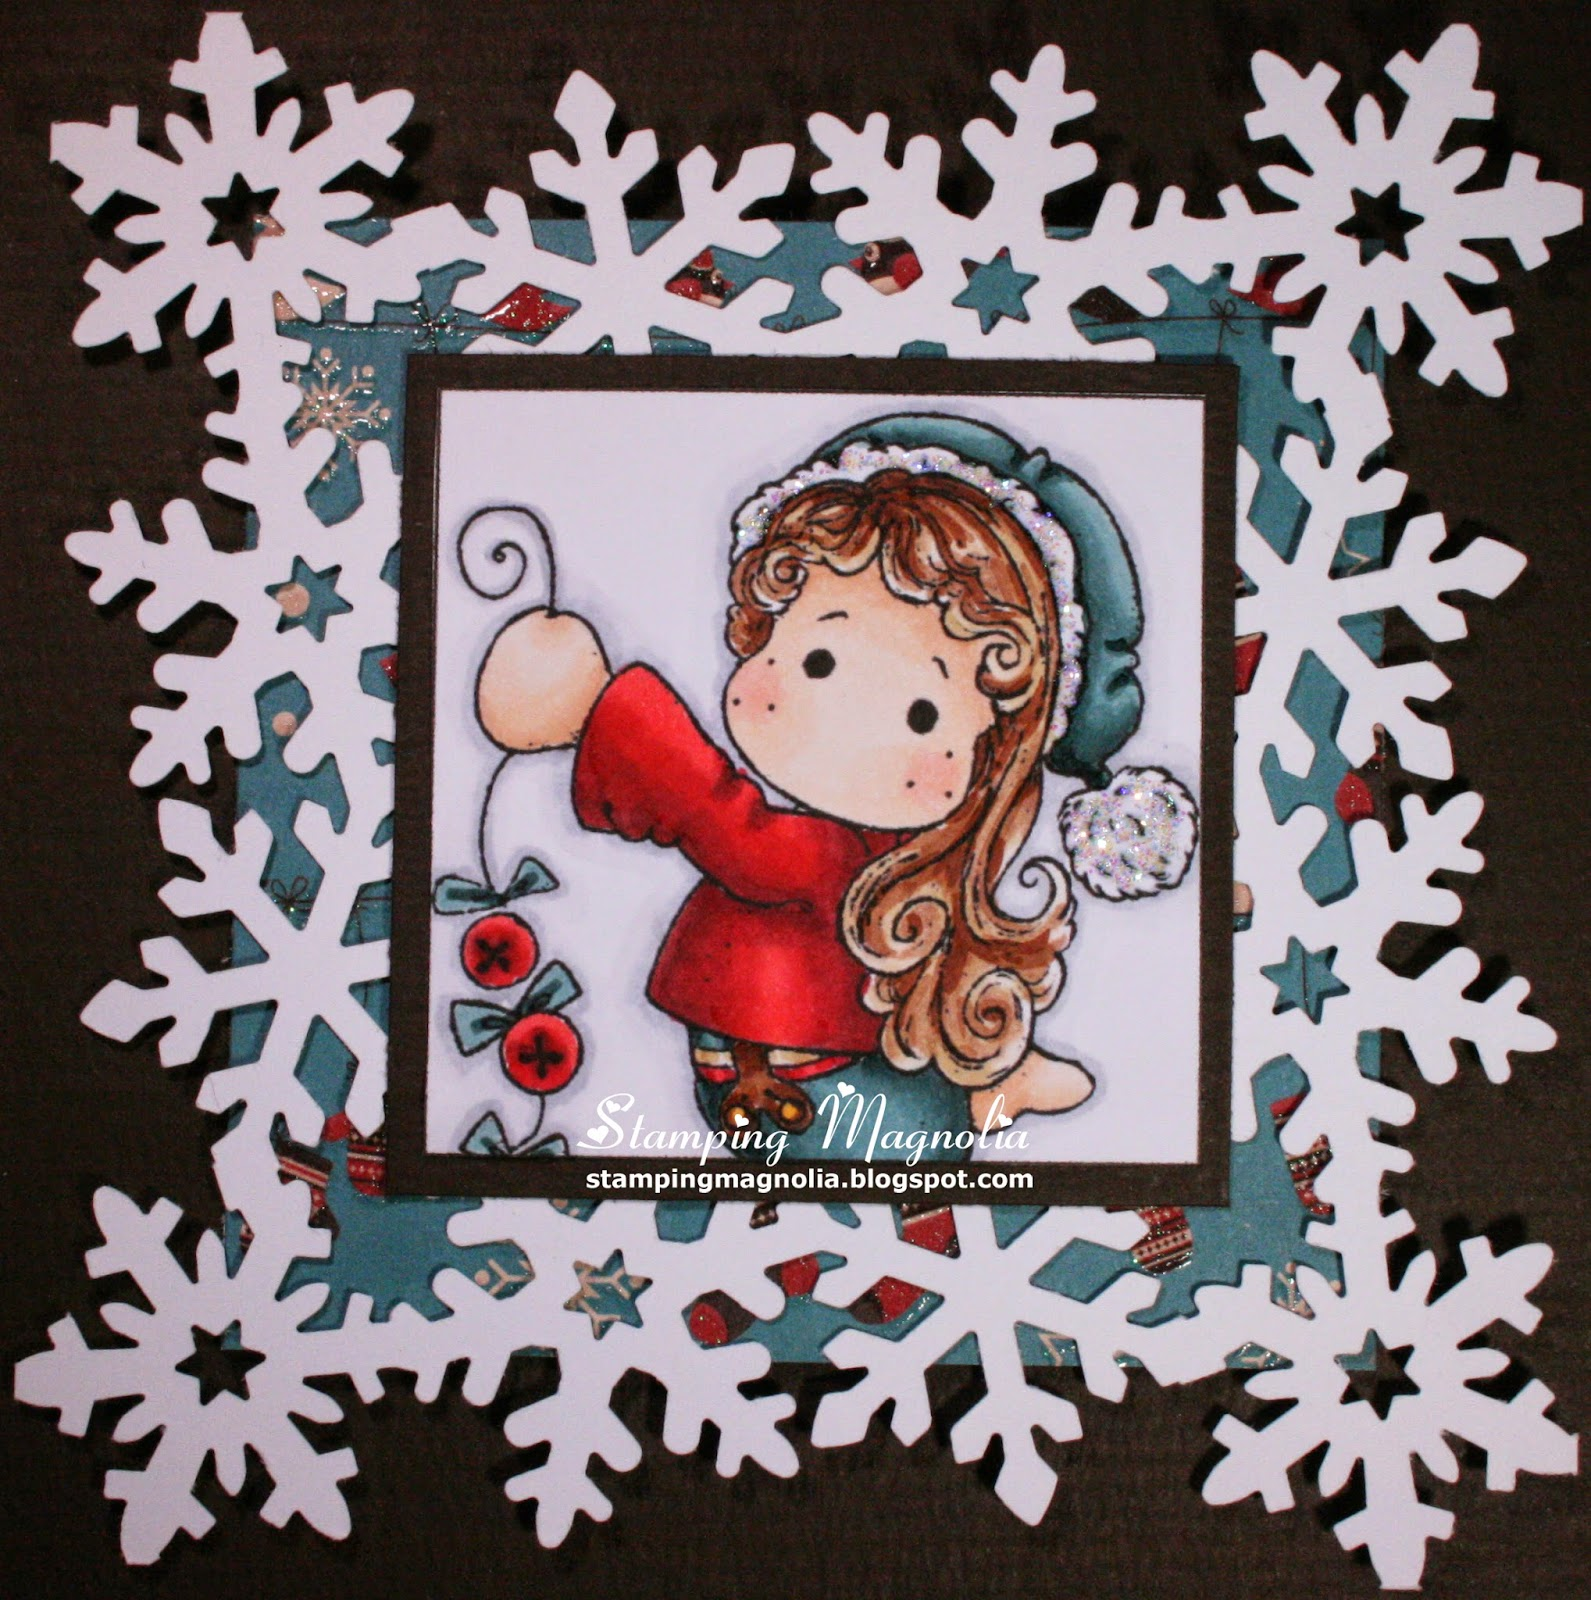 Coloring Magnolia Stamp A Christmas Story Collection - Jigle Jangle Tilda